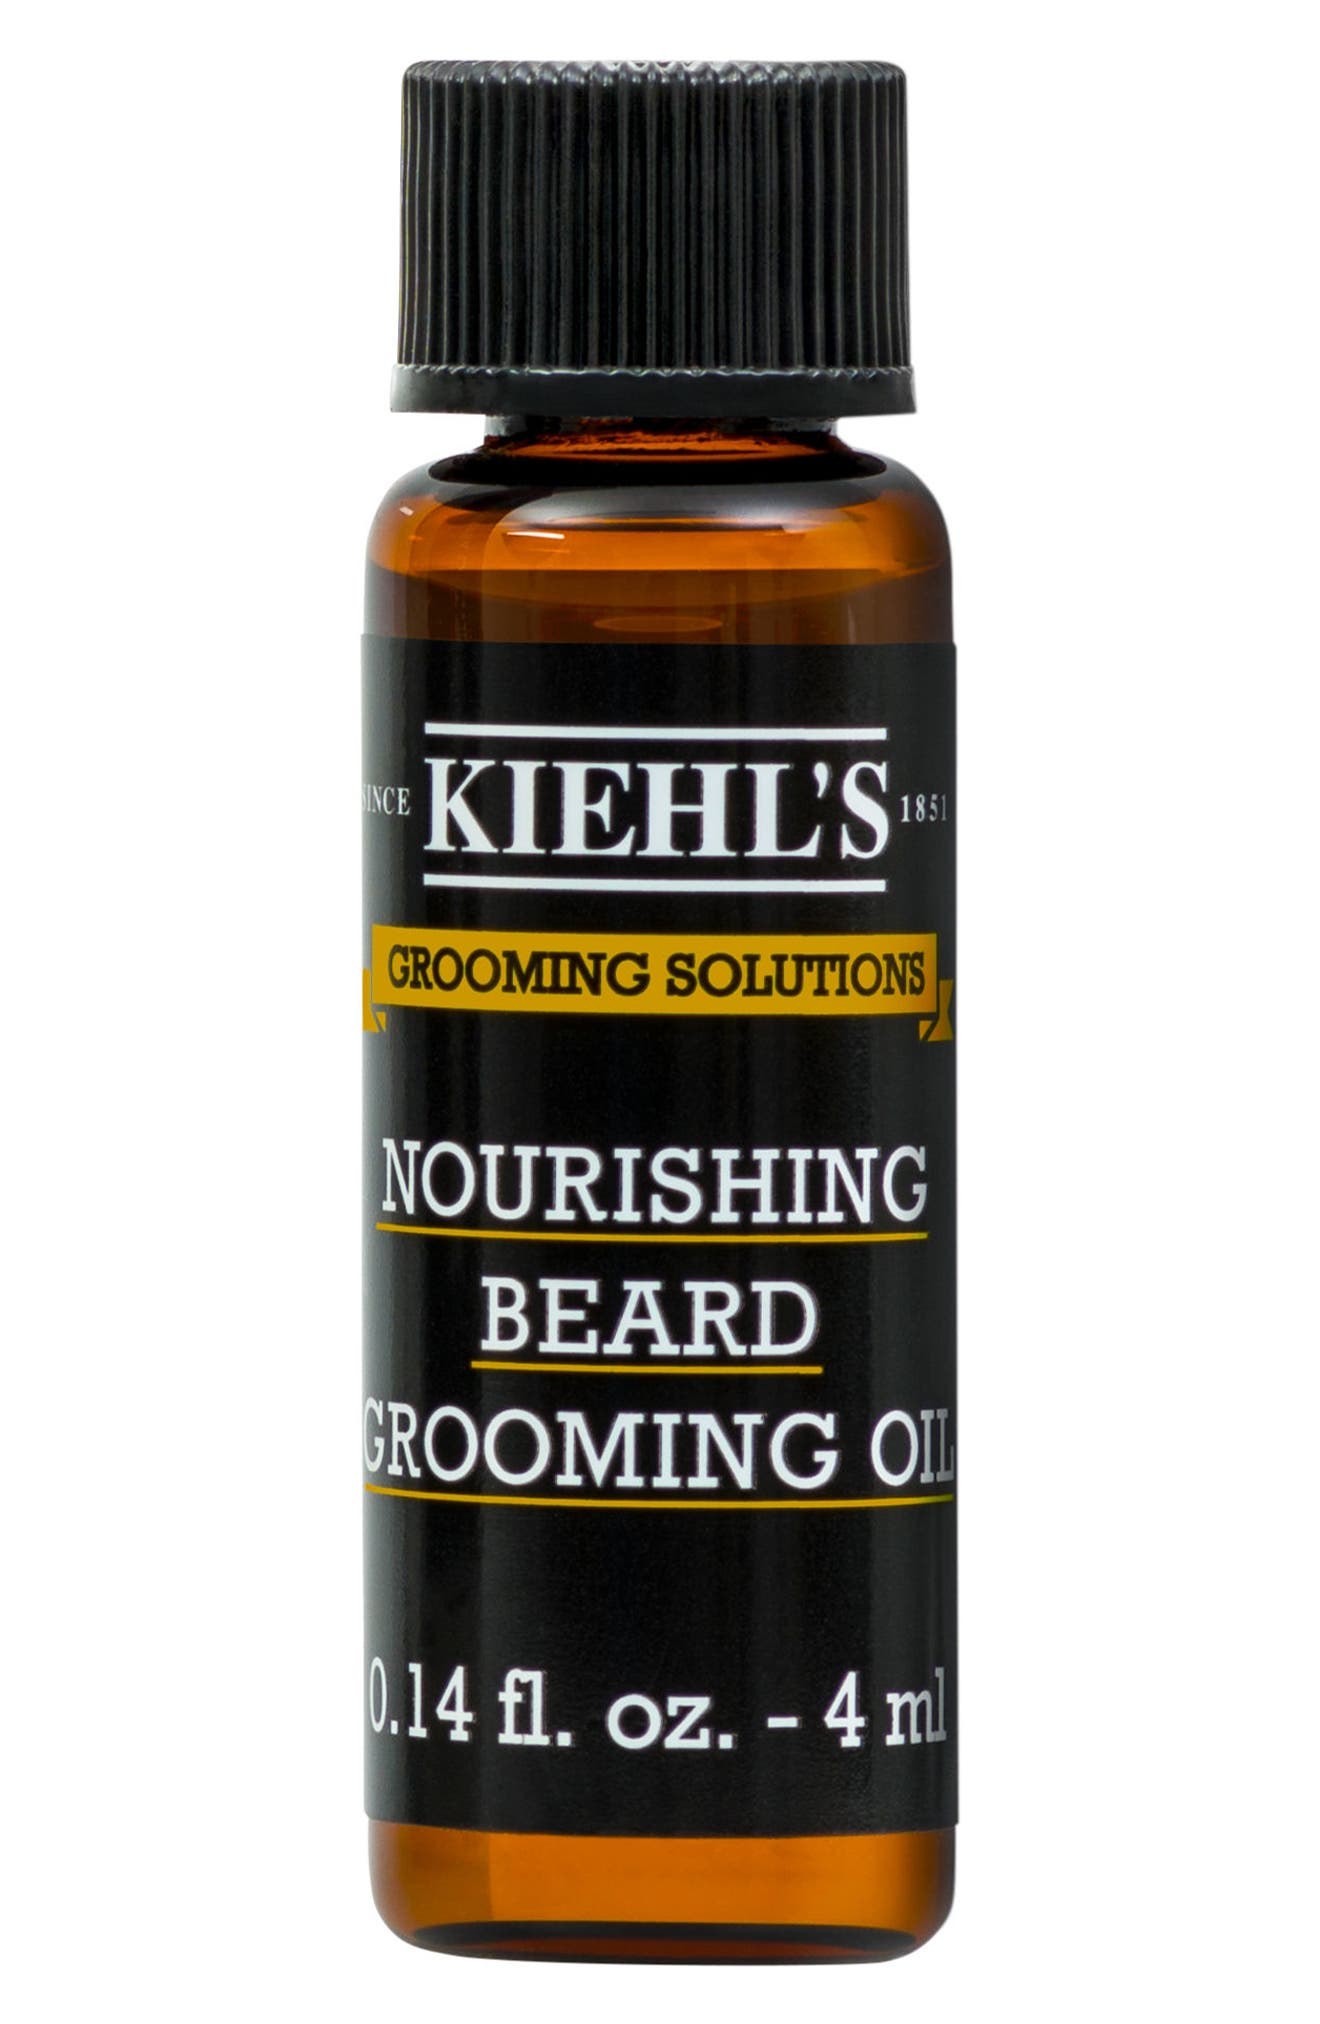 KIEHL'S SINCE 1851, Nourishing Beard Grooming Oil, Alternate thumbnail 5, color, NO COLOR